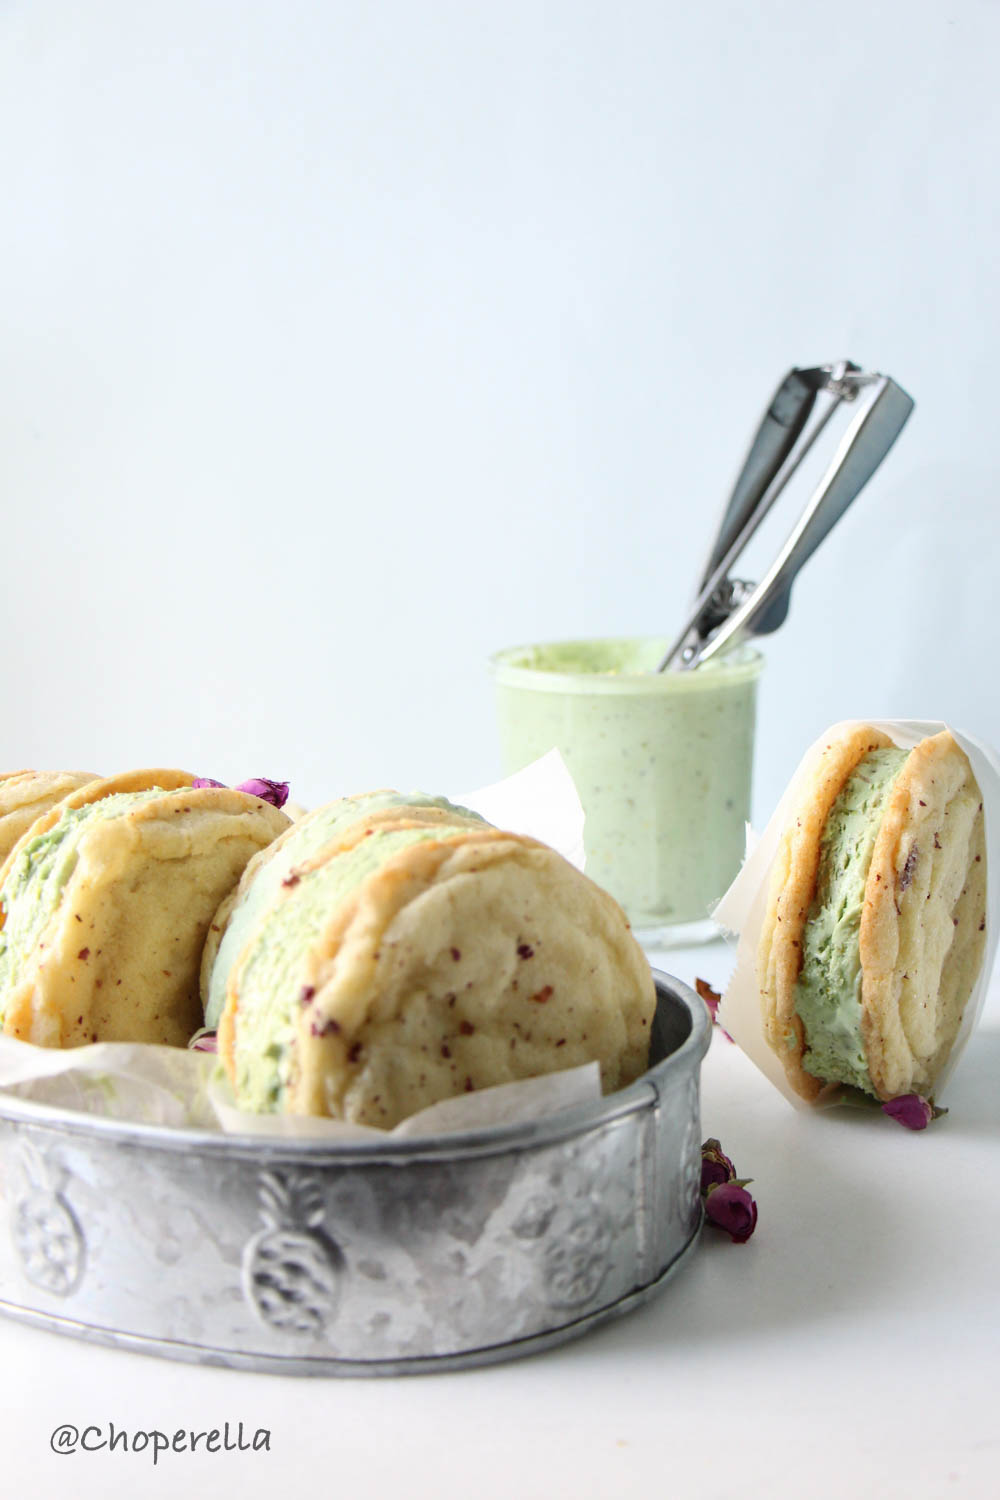 Rose & PIstachio Icecream Sandwich-1-14